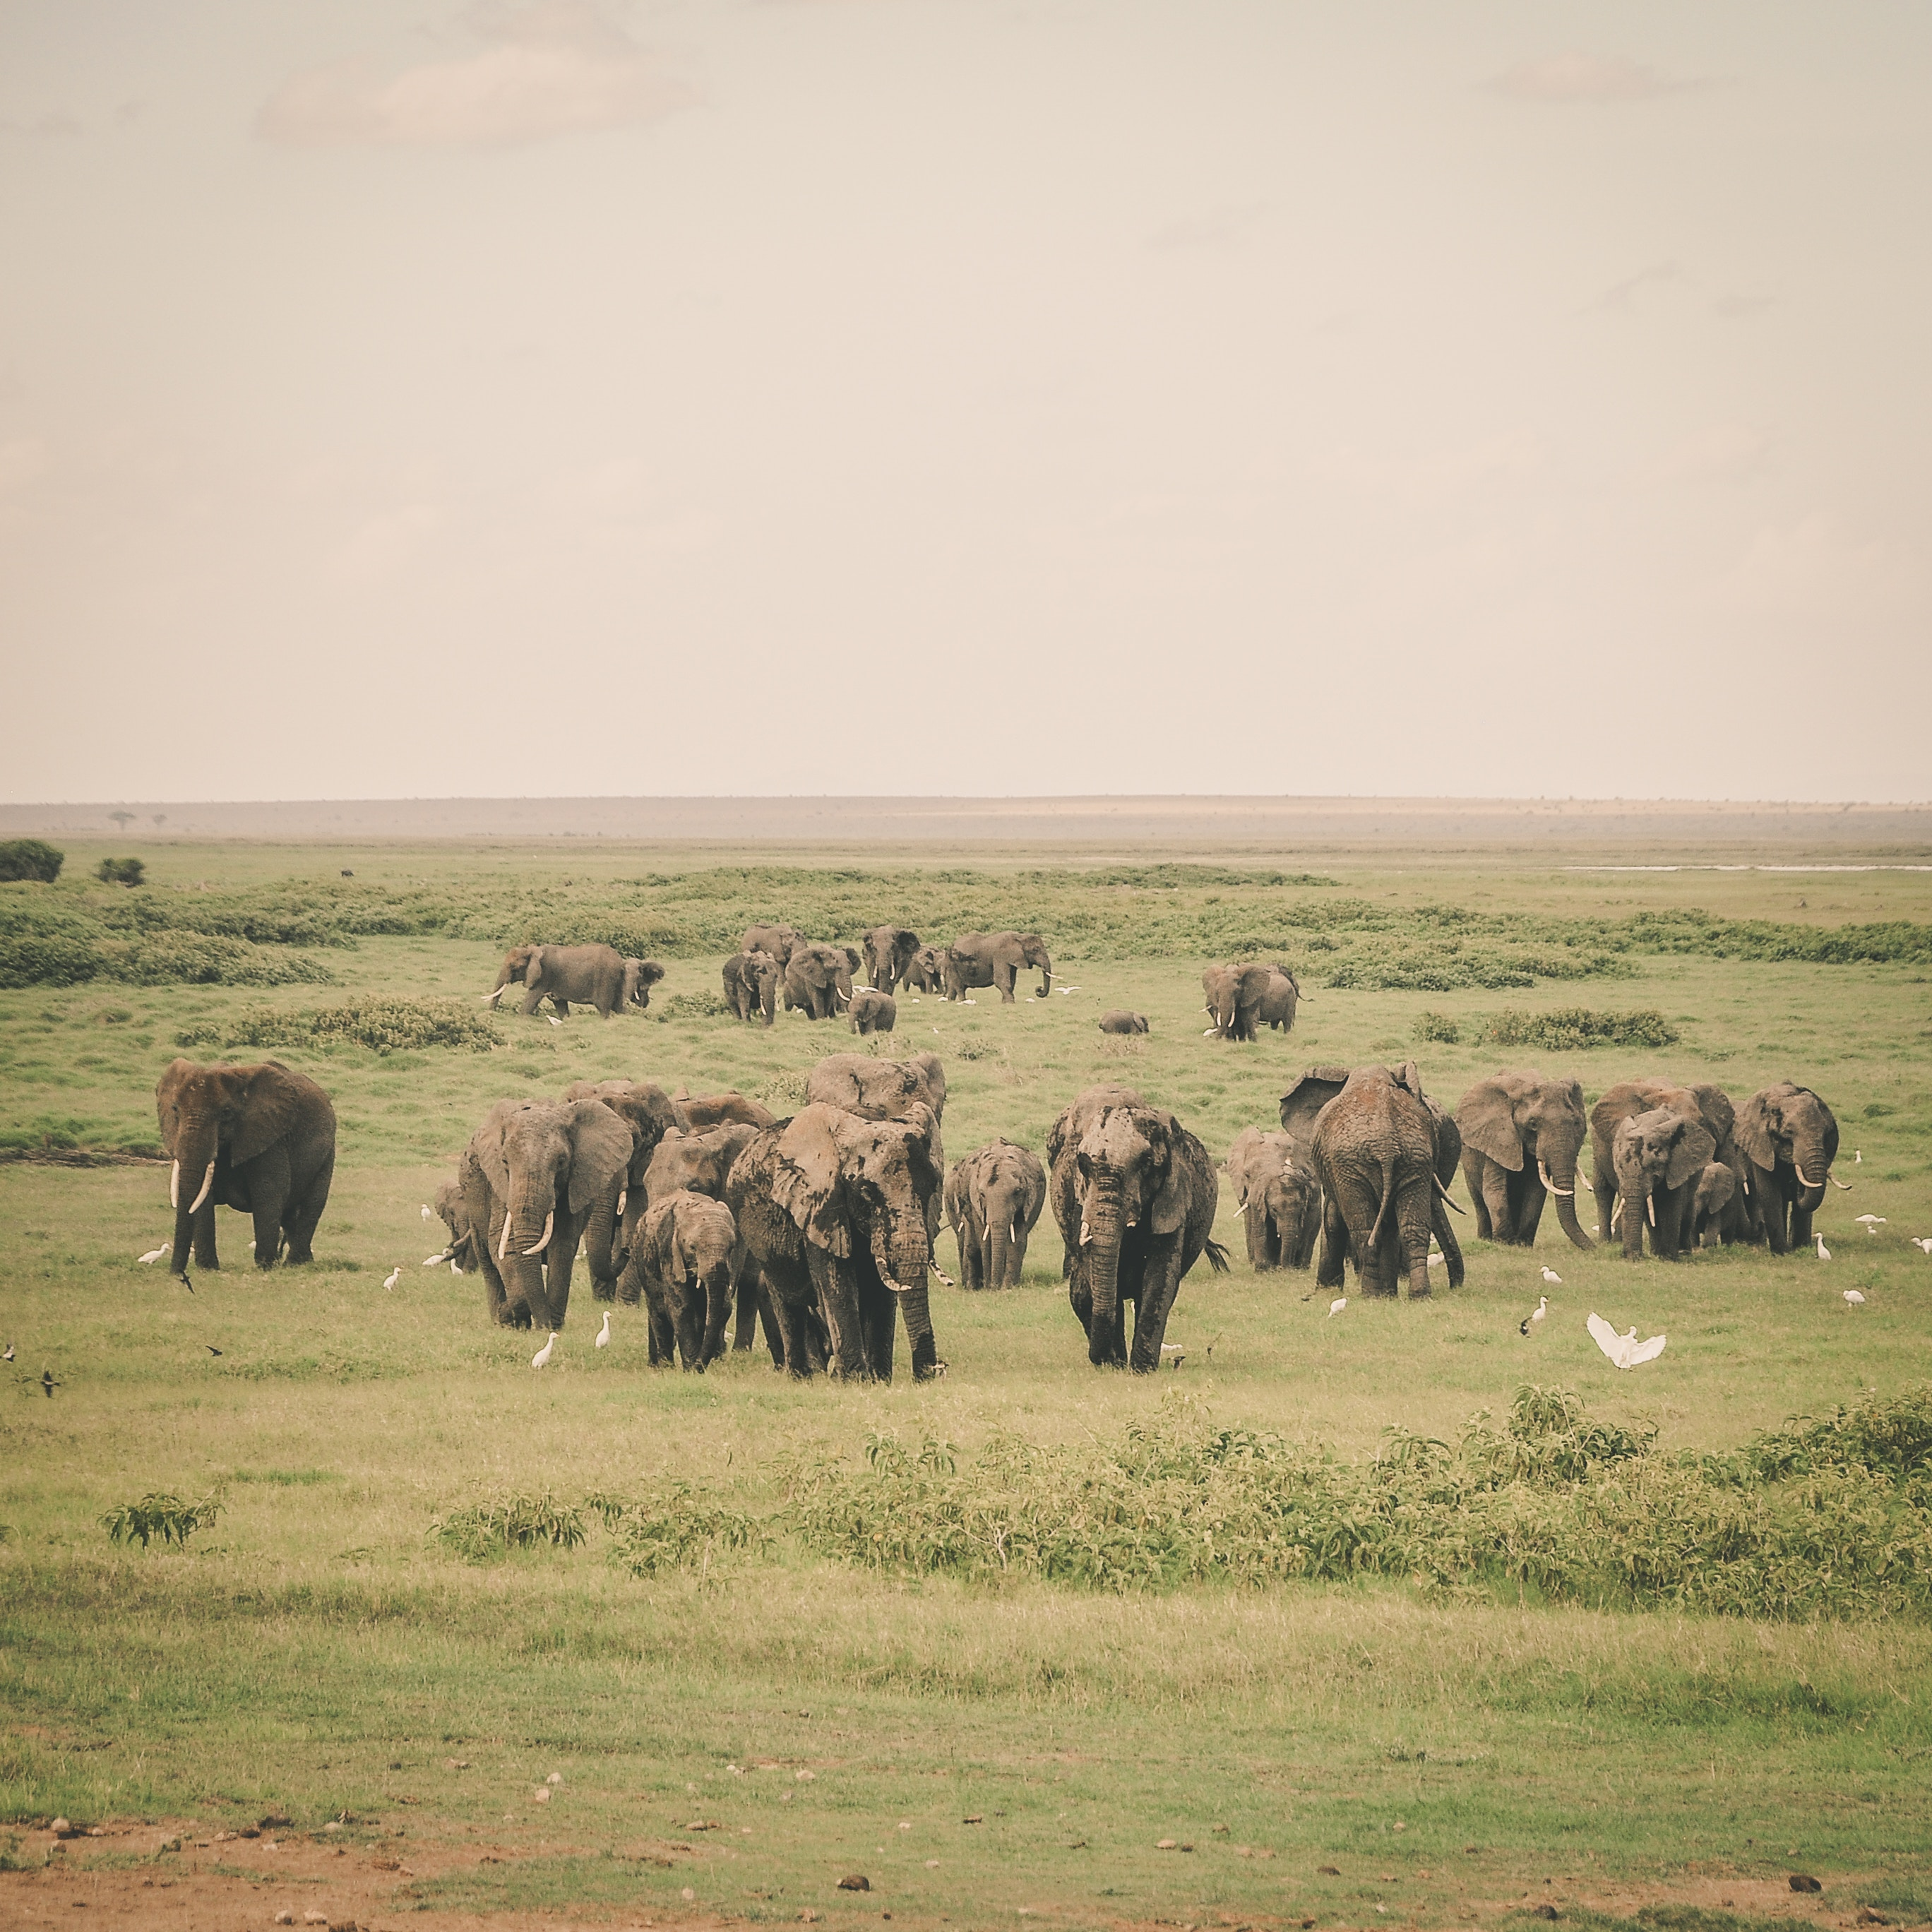 Elephants in Kenya grazing in the Maasai Mara